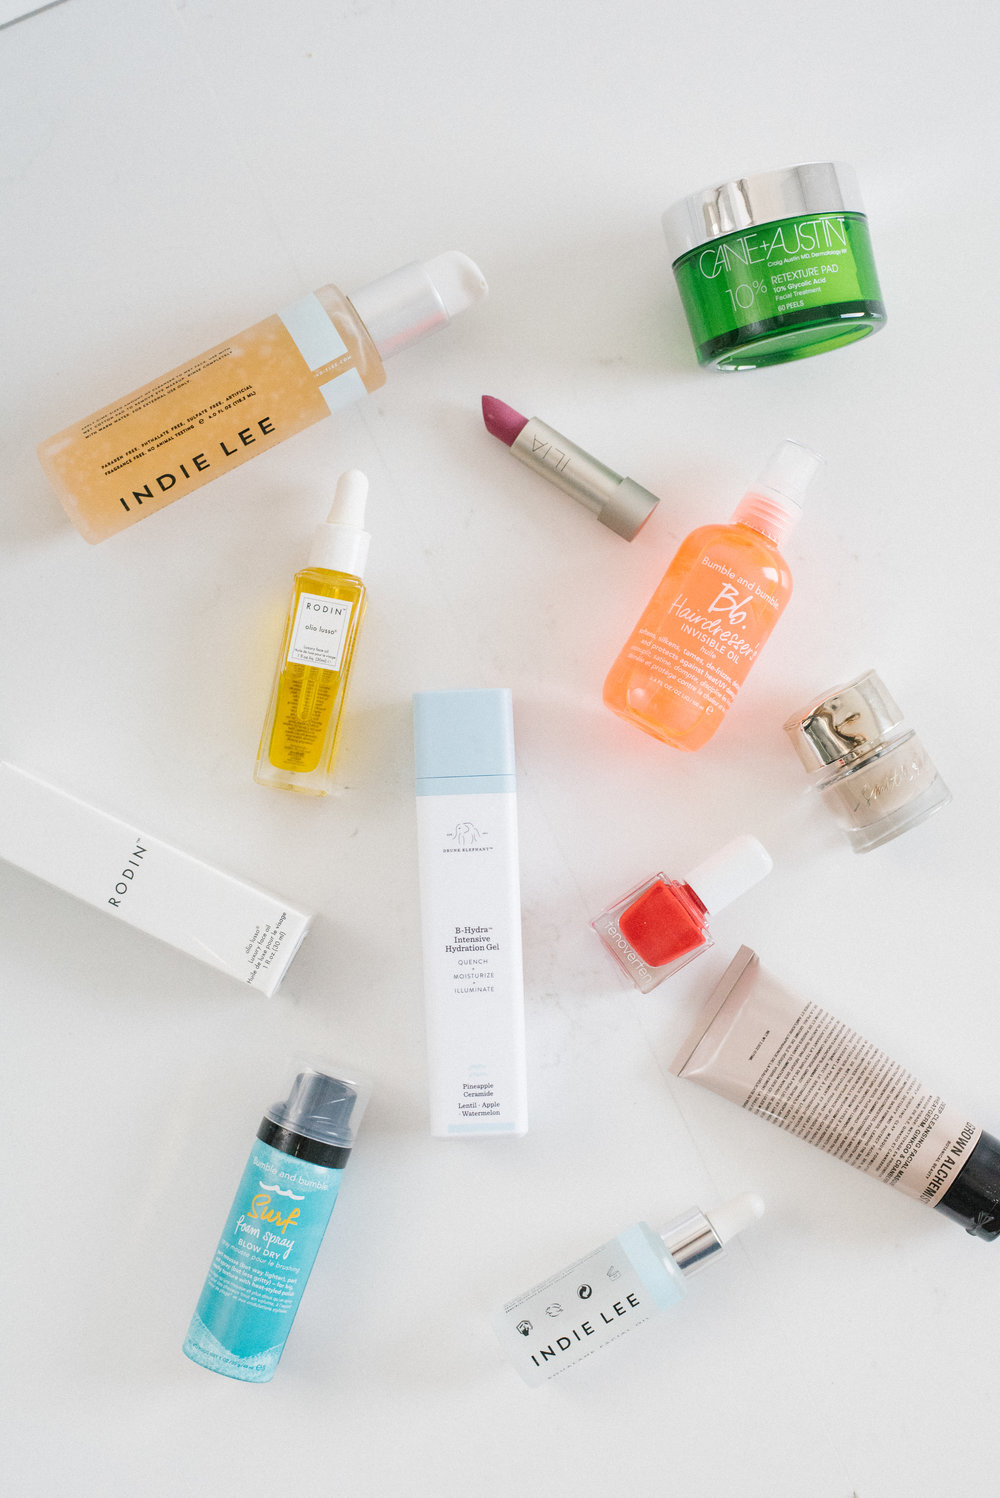 A handful of products from c | two. Featuring: Indie Lee, Grown Alchemist, bumble & bumble, cane + austin, Ilia Beauty, RODIO olio lusso, and Drunk Elephant